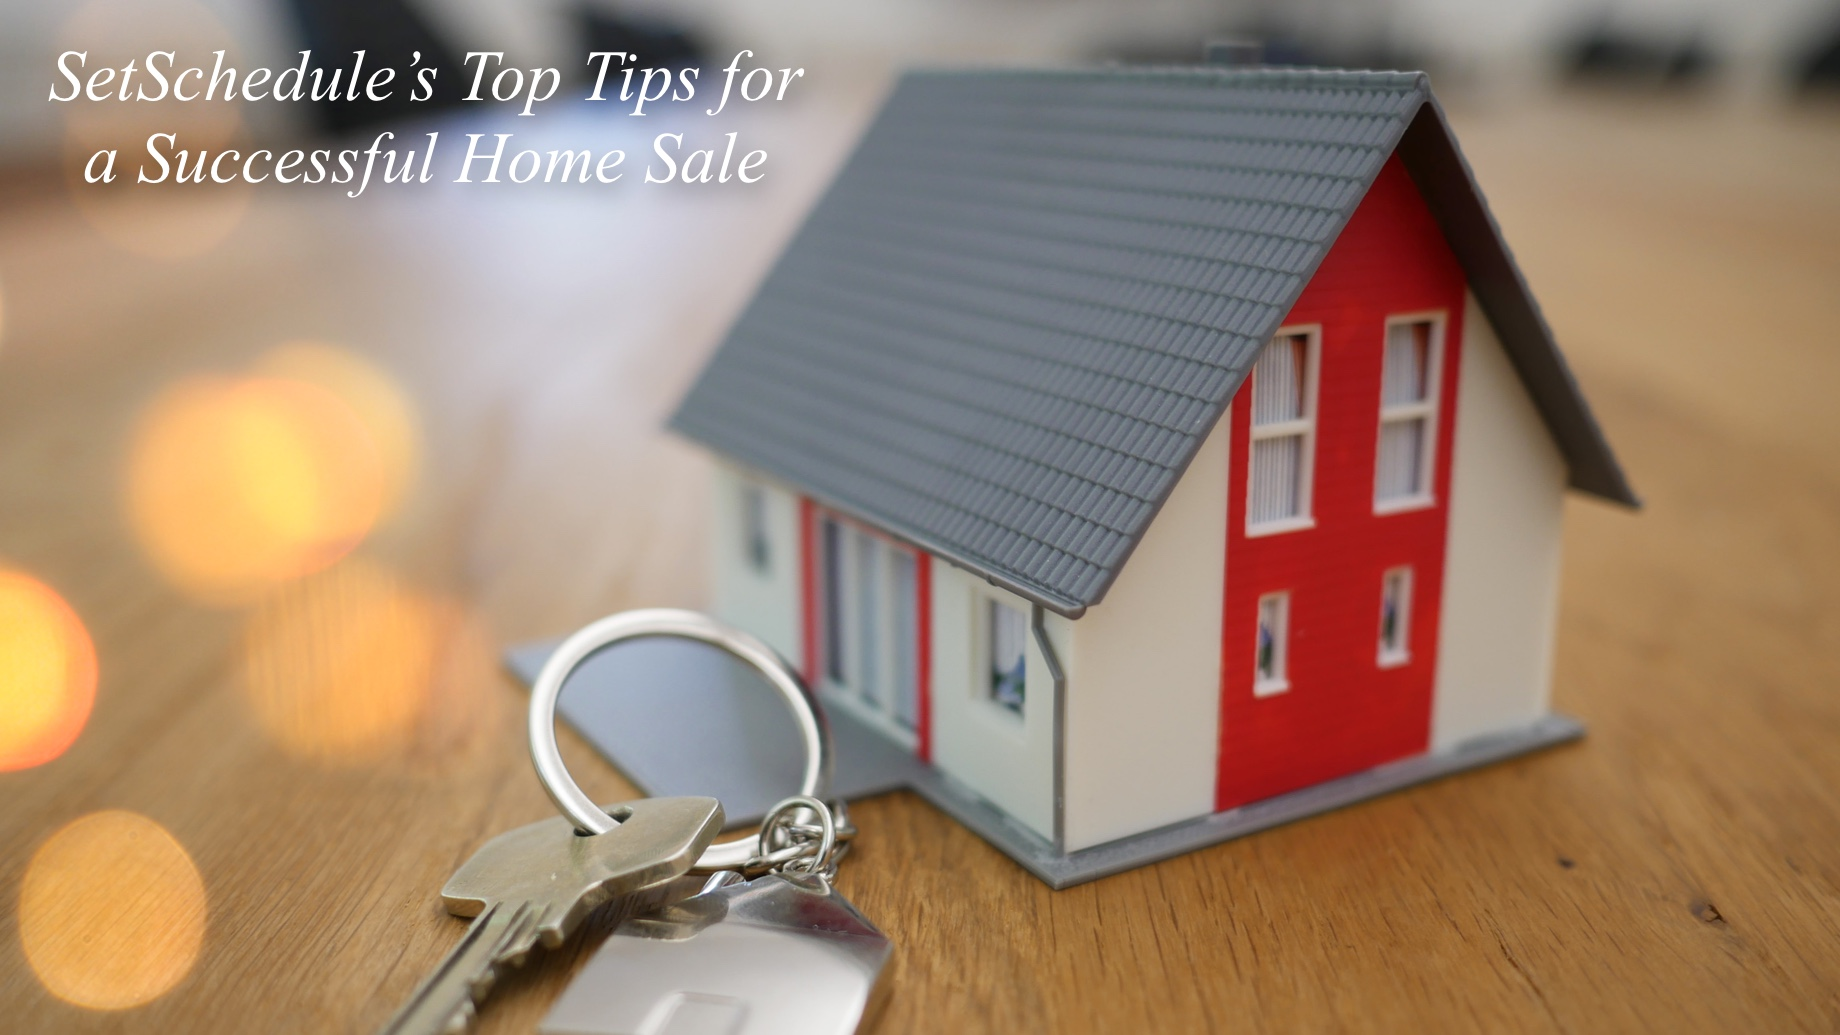 SetSchedule's Top Tips for a Successful Home Sale